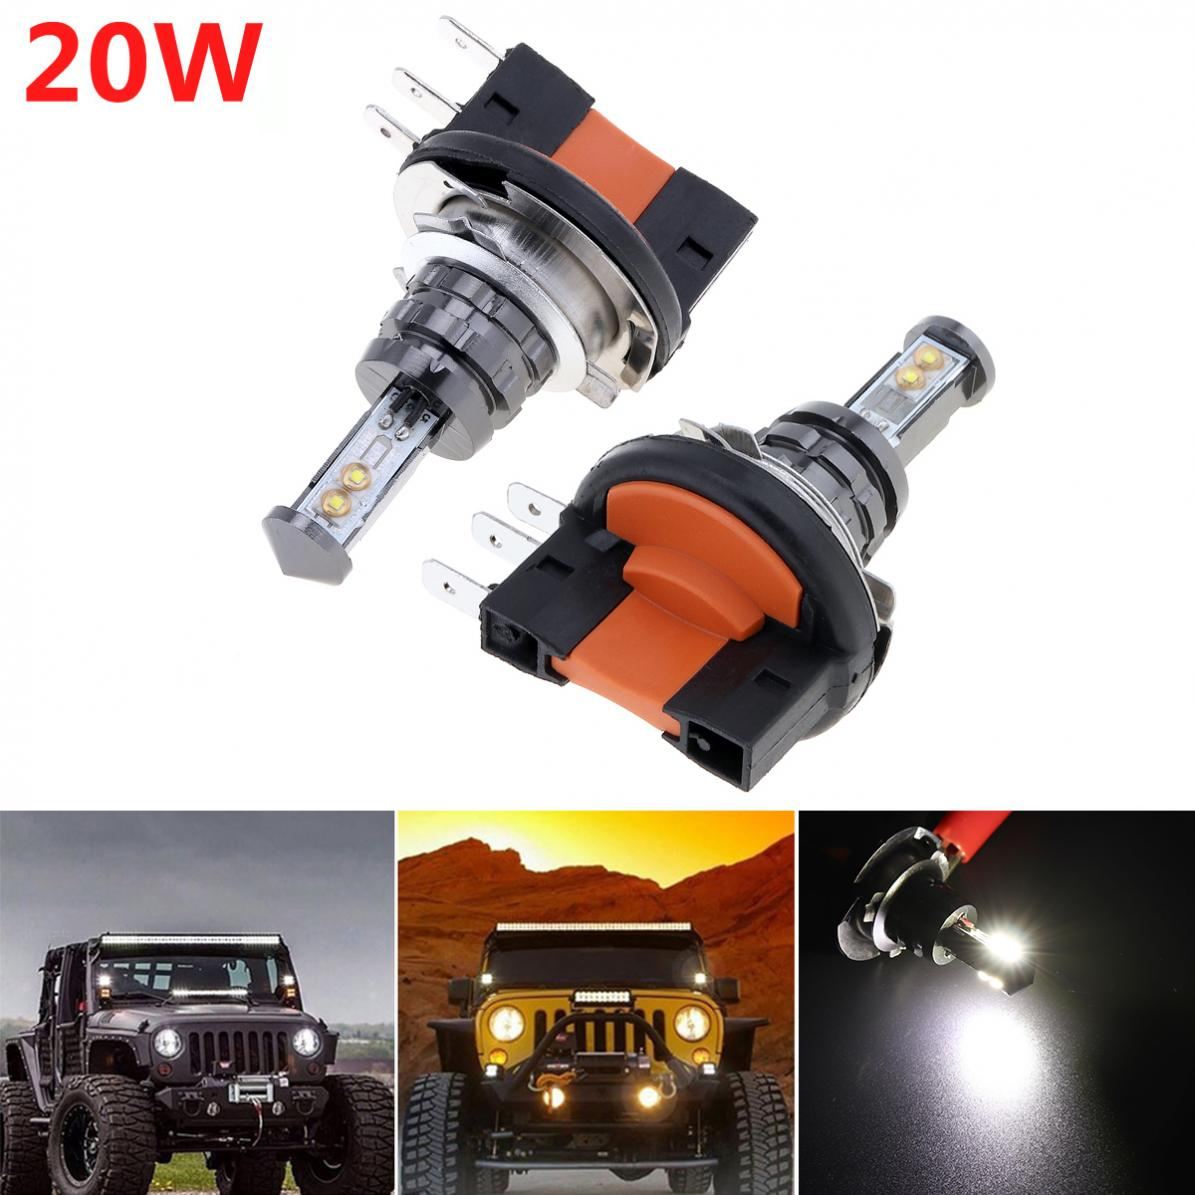 2Pcs 20W H15 LED Bulb 4SMD XTE Car Fog Light DC 12V 360 Degree 720lm White